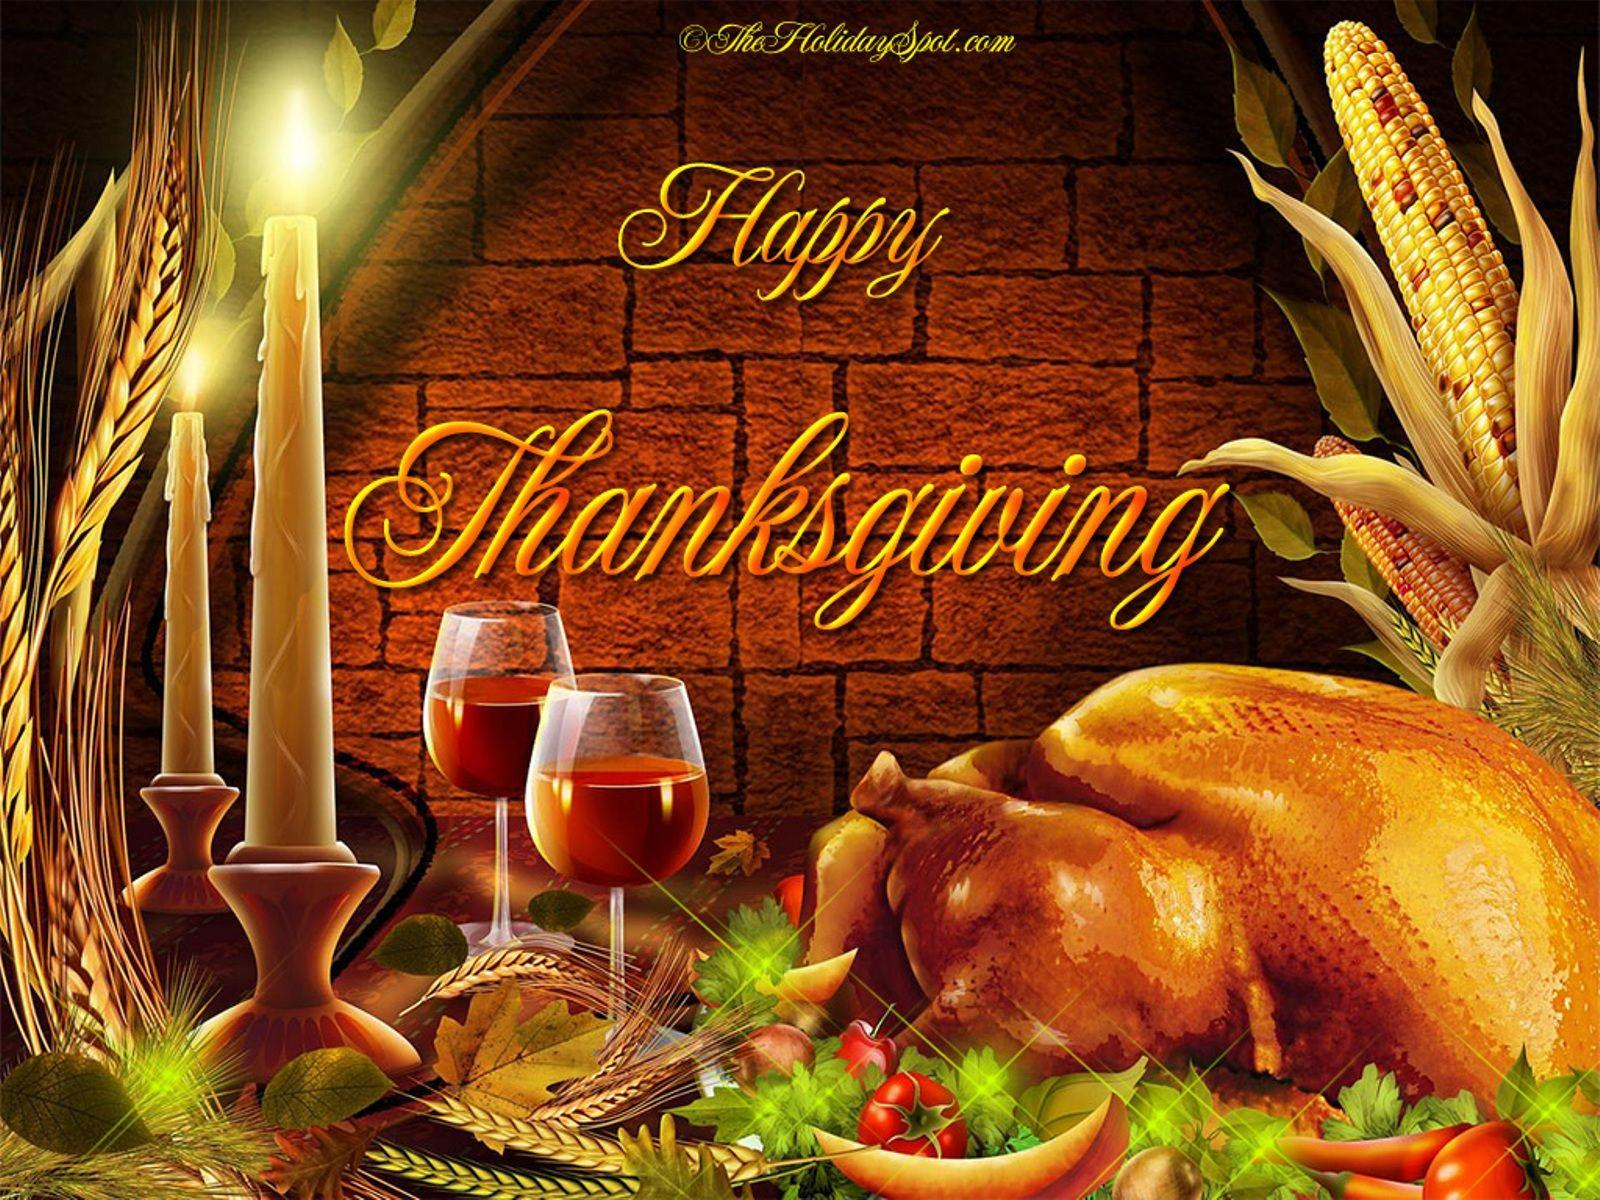 22+ Thanksgiving Day DP Profile HD Cover And Posters 2017